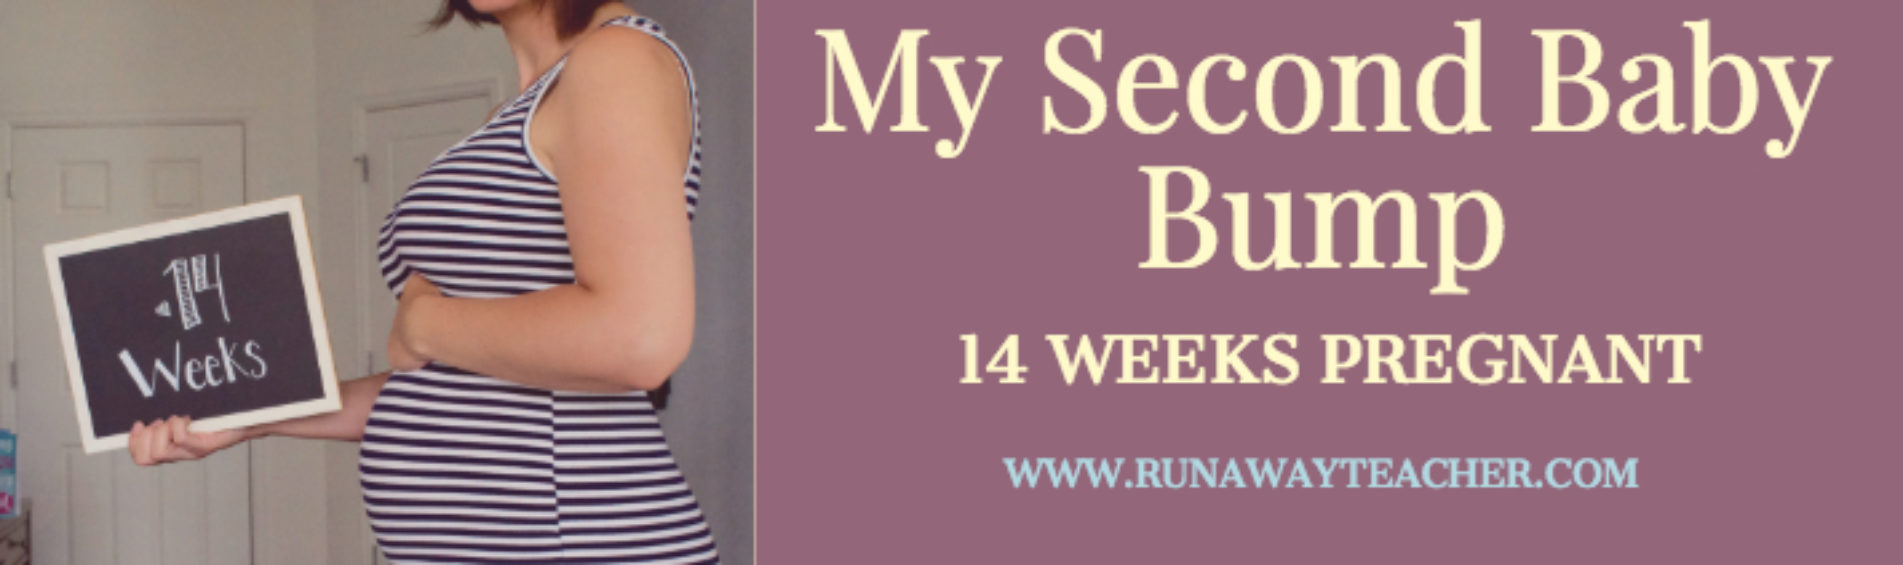 My Second Baby Bump: 14 Weeks Pregnant